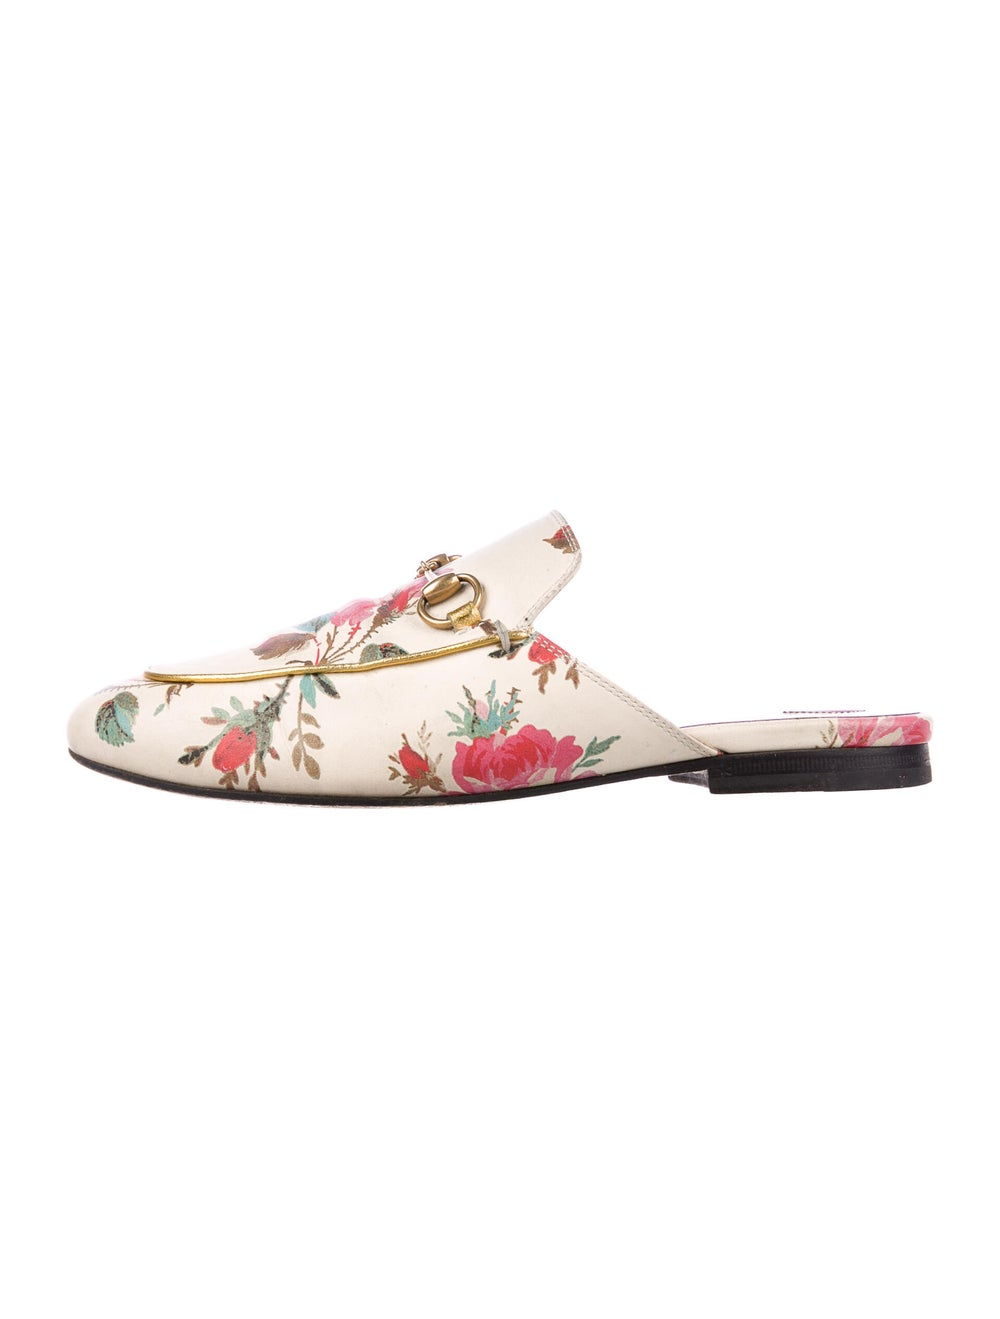 Gucci Princetown Floral Mules Leather Mules - image 1